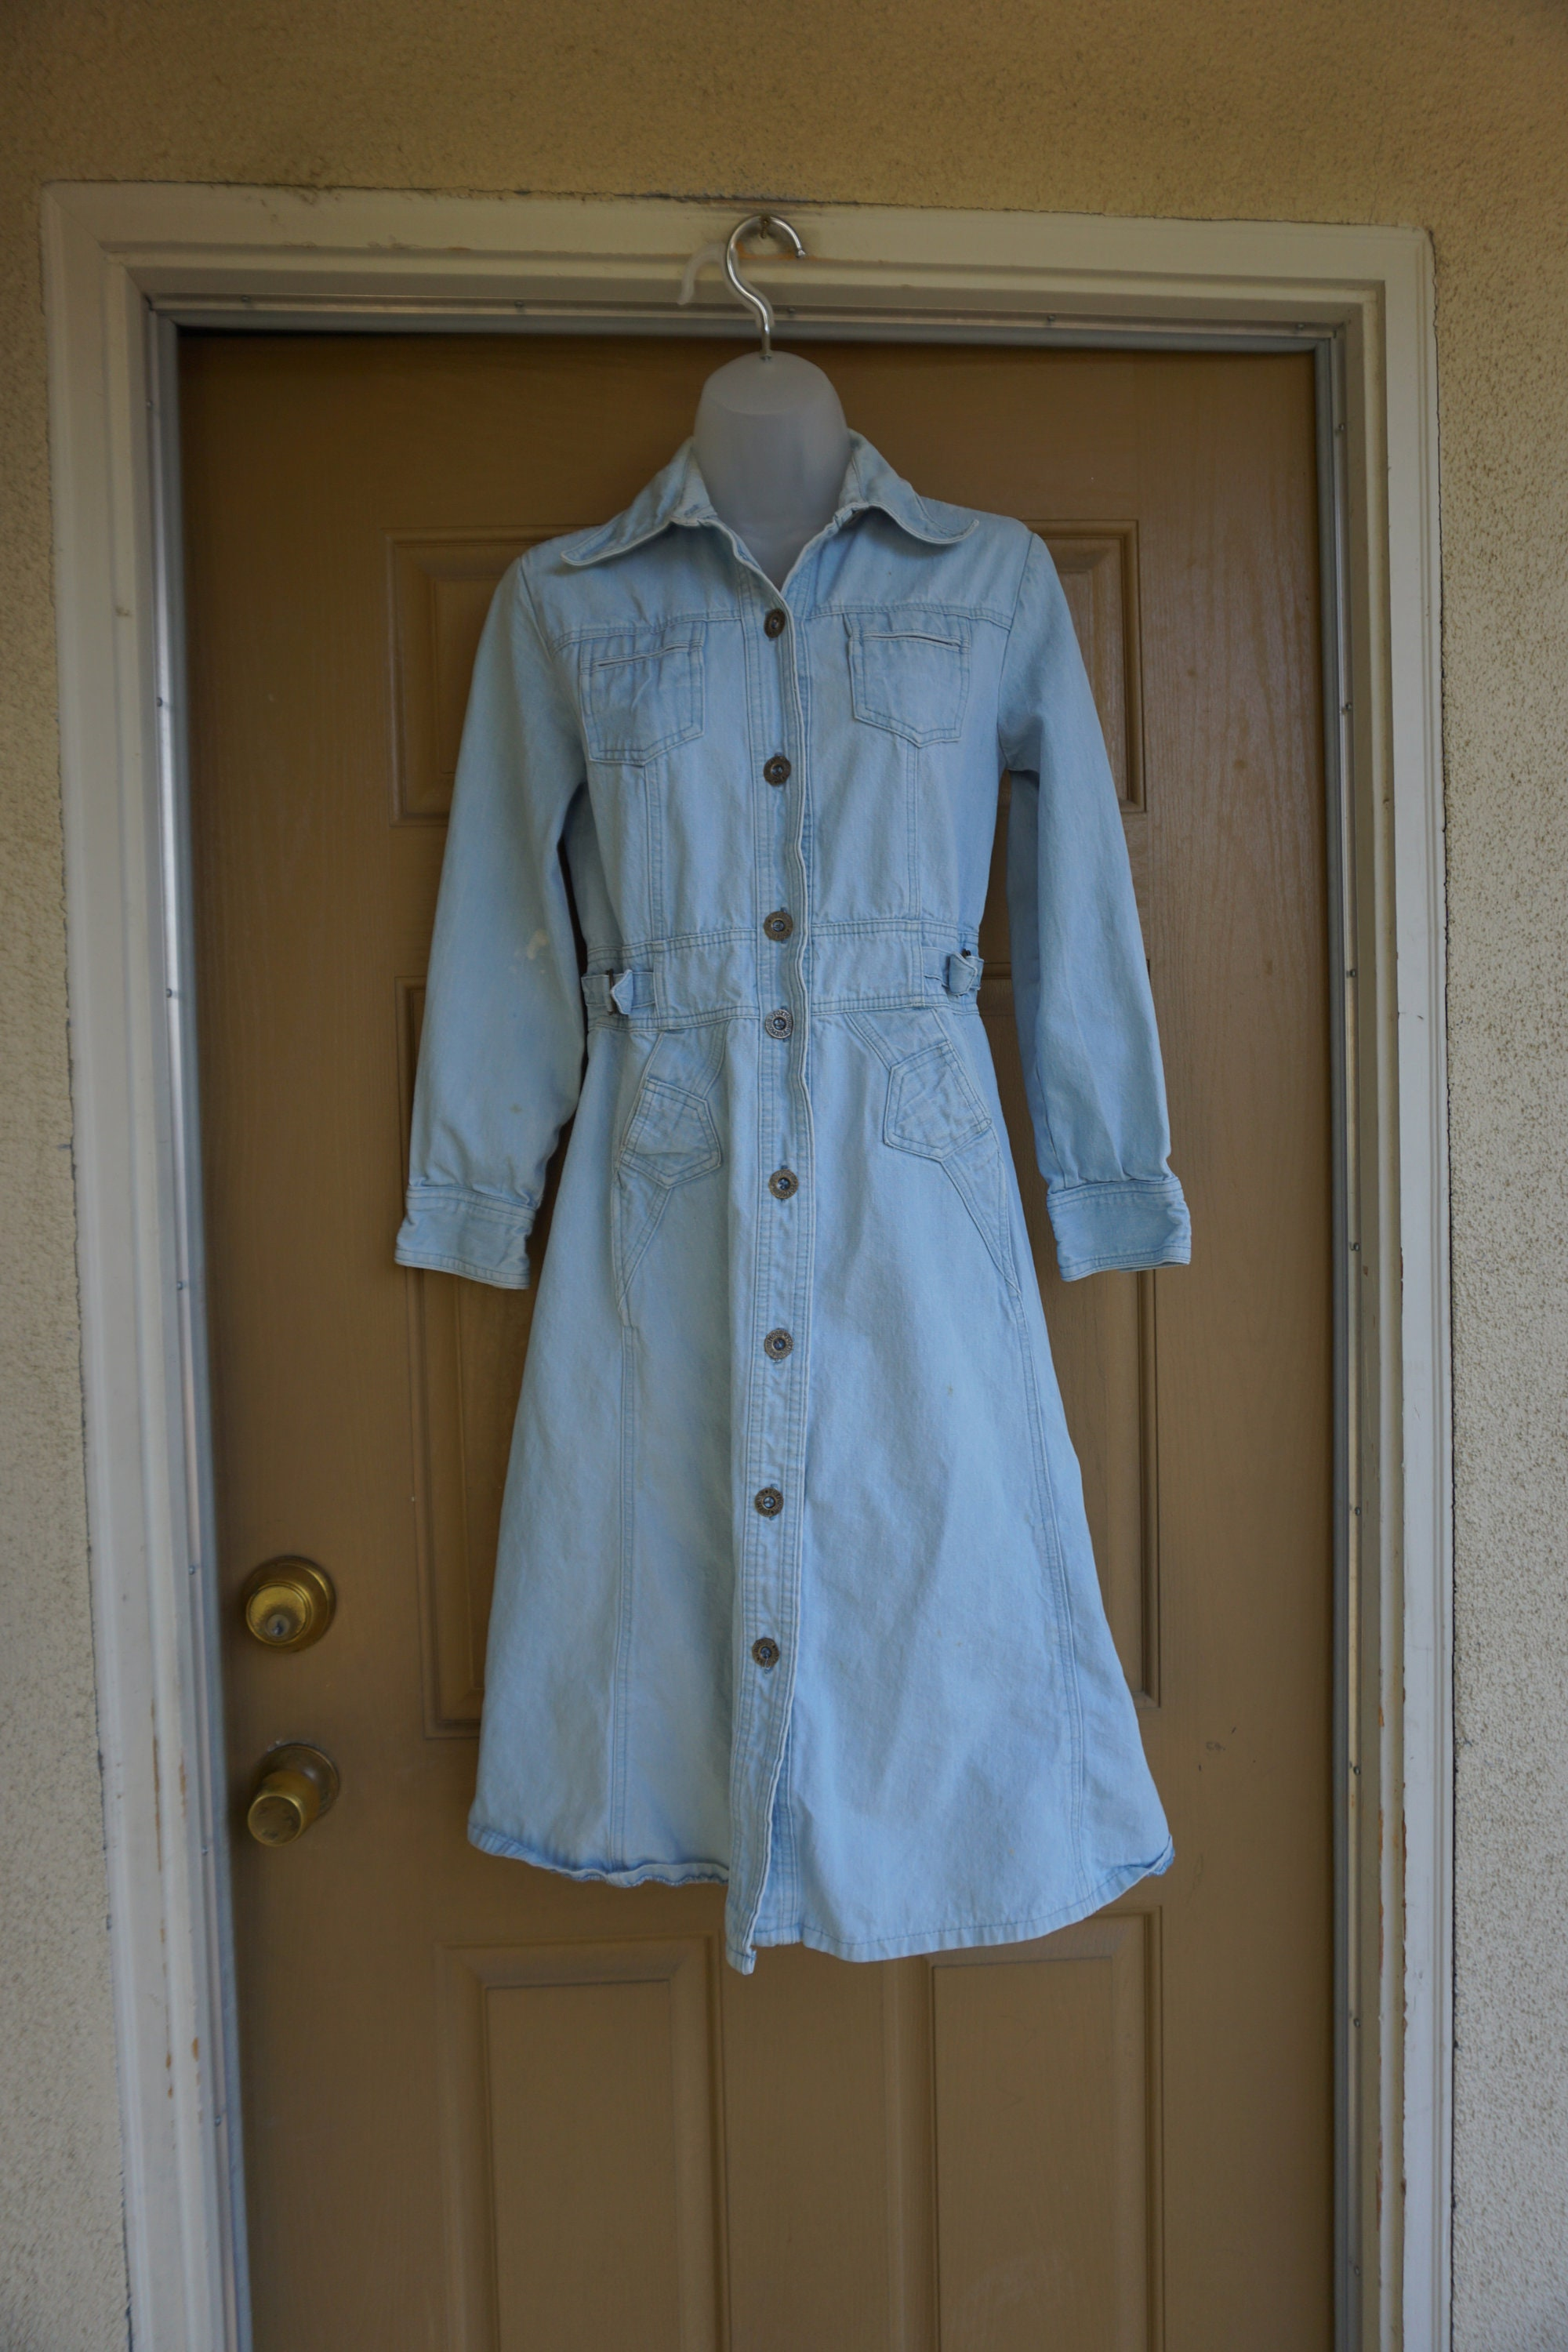 80s Dresses | Casual to Party Dresses Vintage 80S 90S Size 9 Medium Long Denim Jean Dress Made By Foxmoor 1980S 1990S $0.00 AT vintagedancer.com